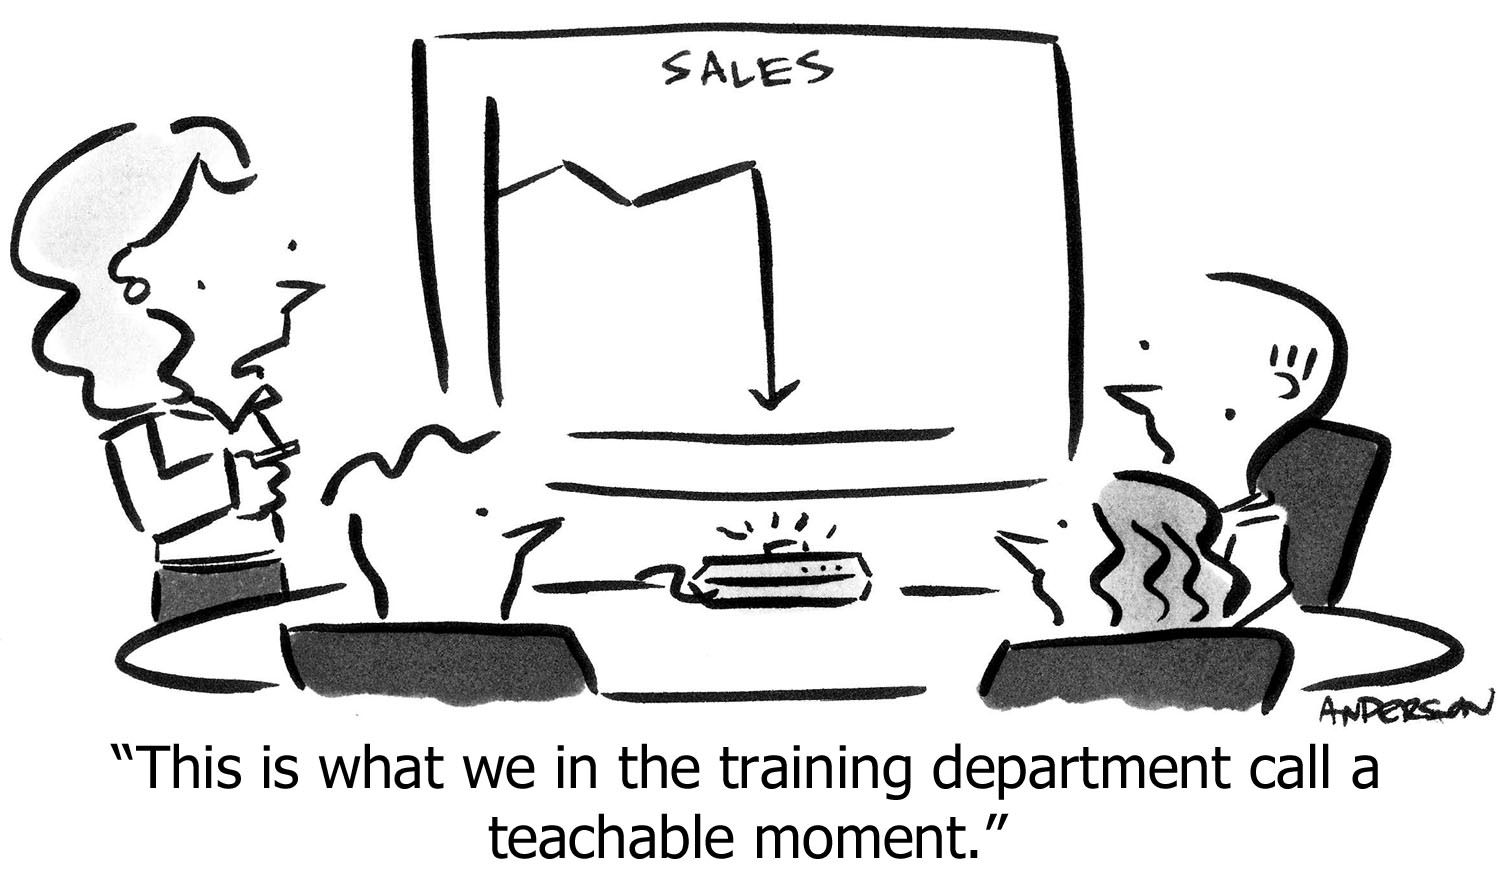 Cartoon: 'This is what we in the training department call